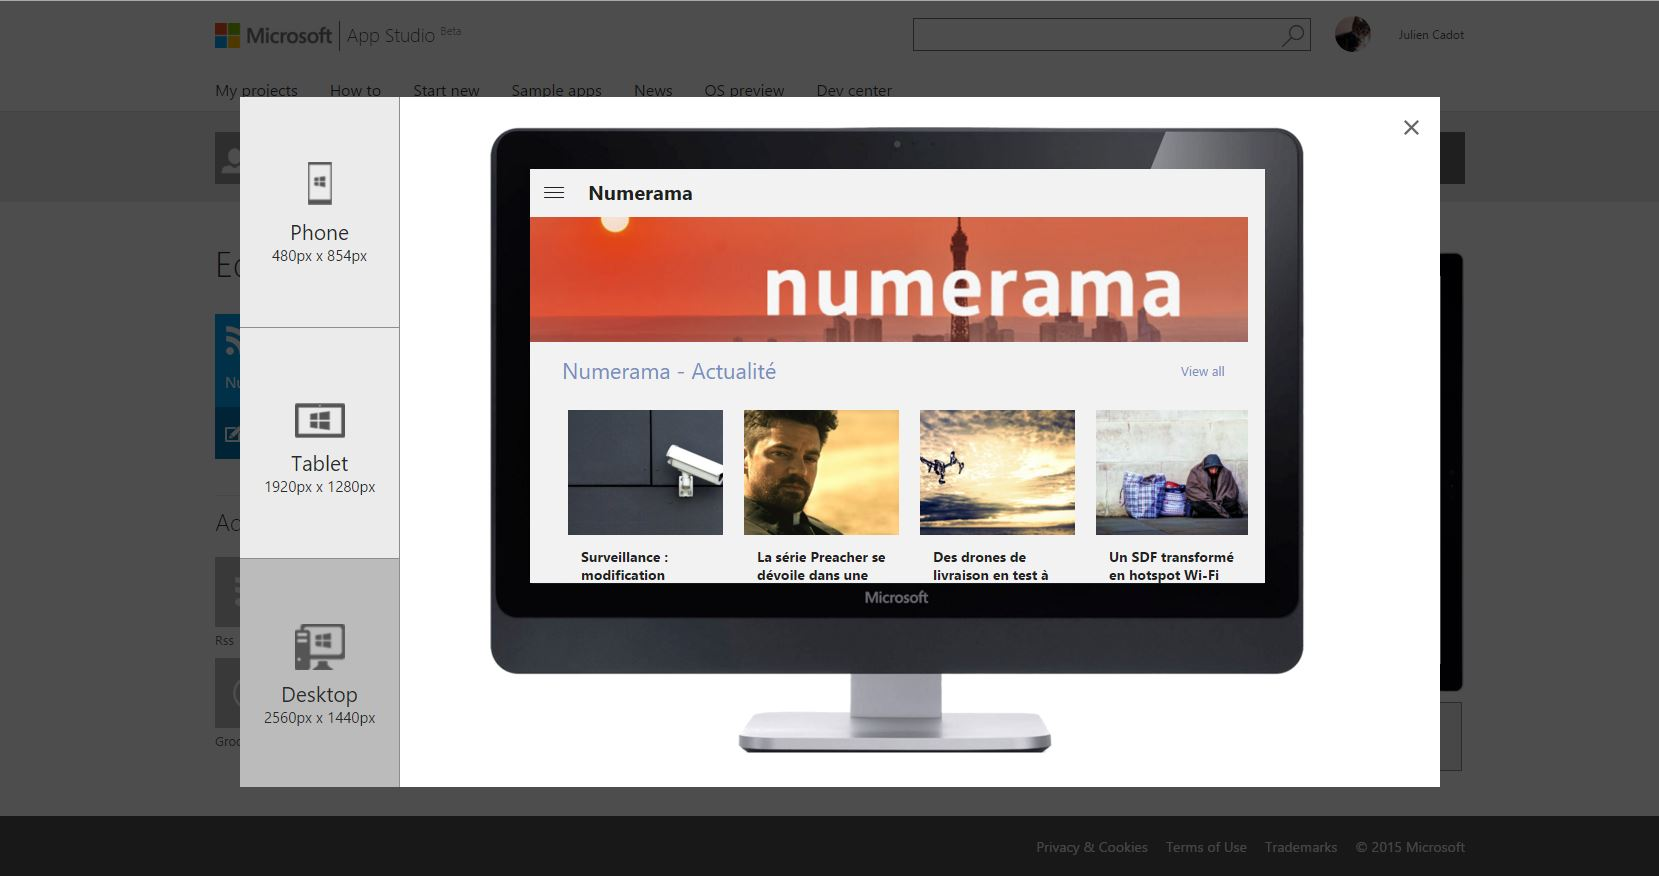 numerama-windows10-2